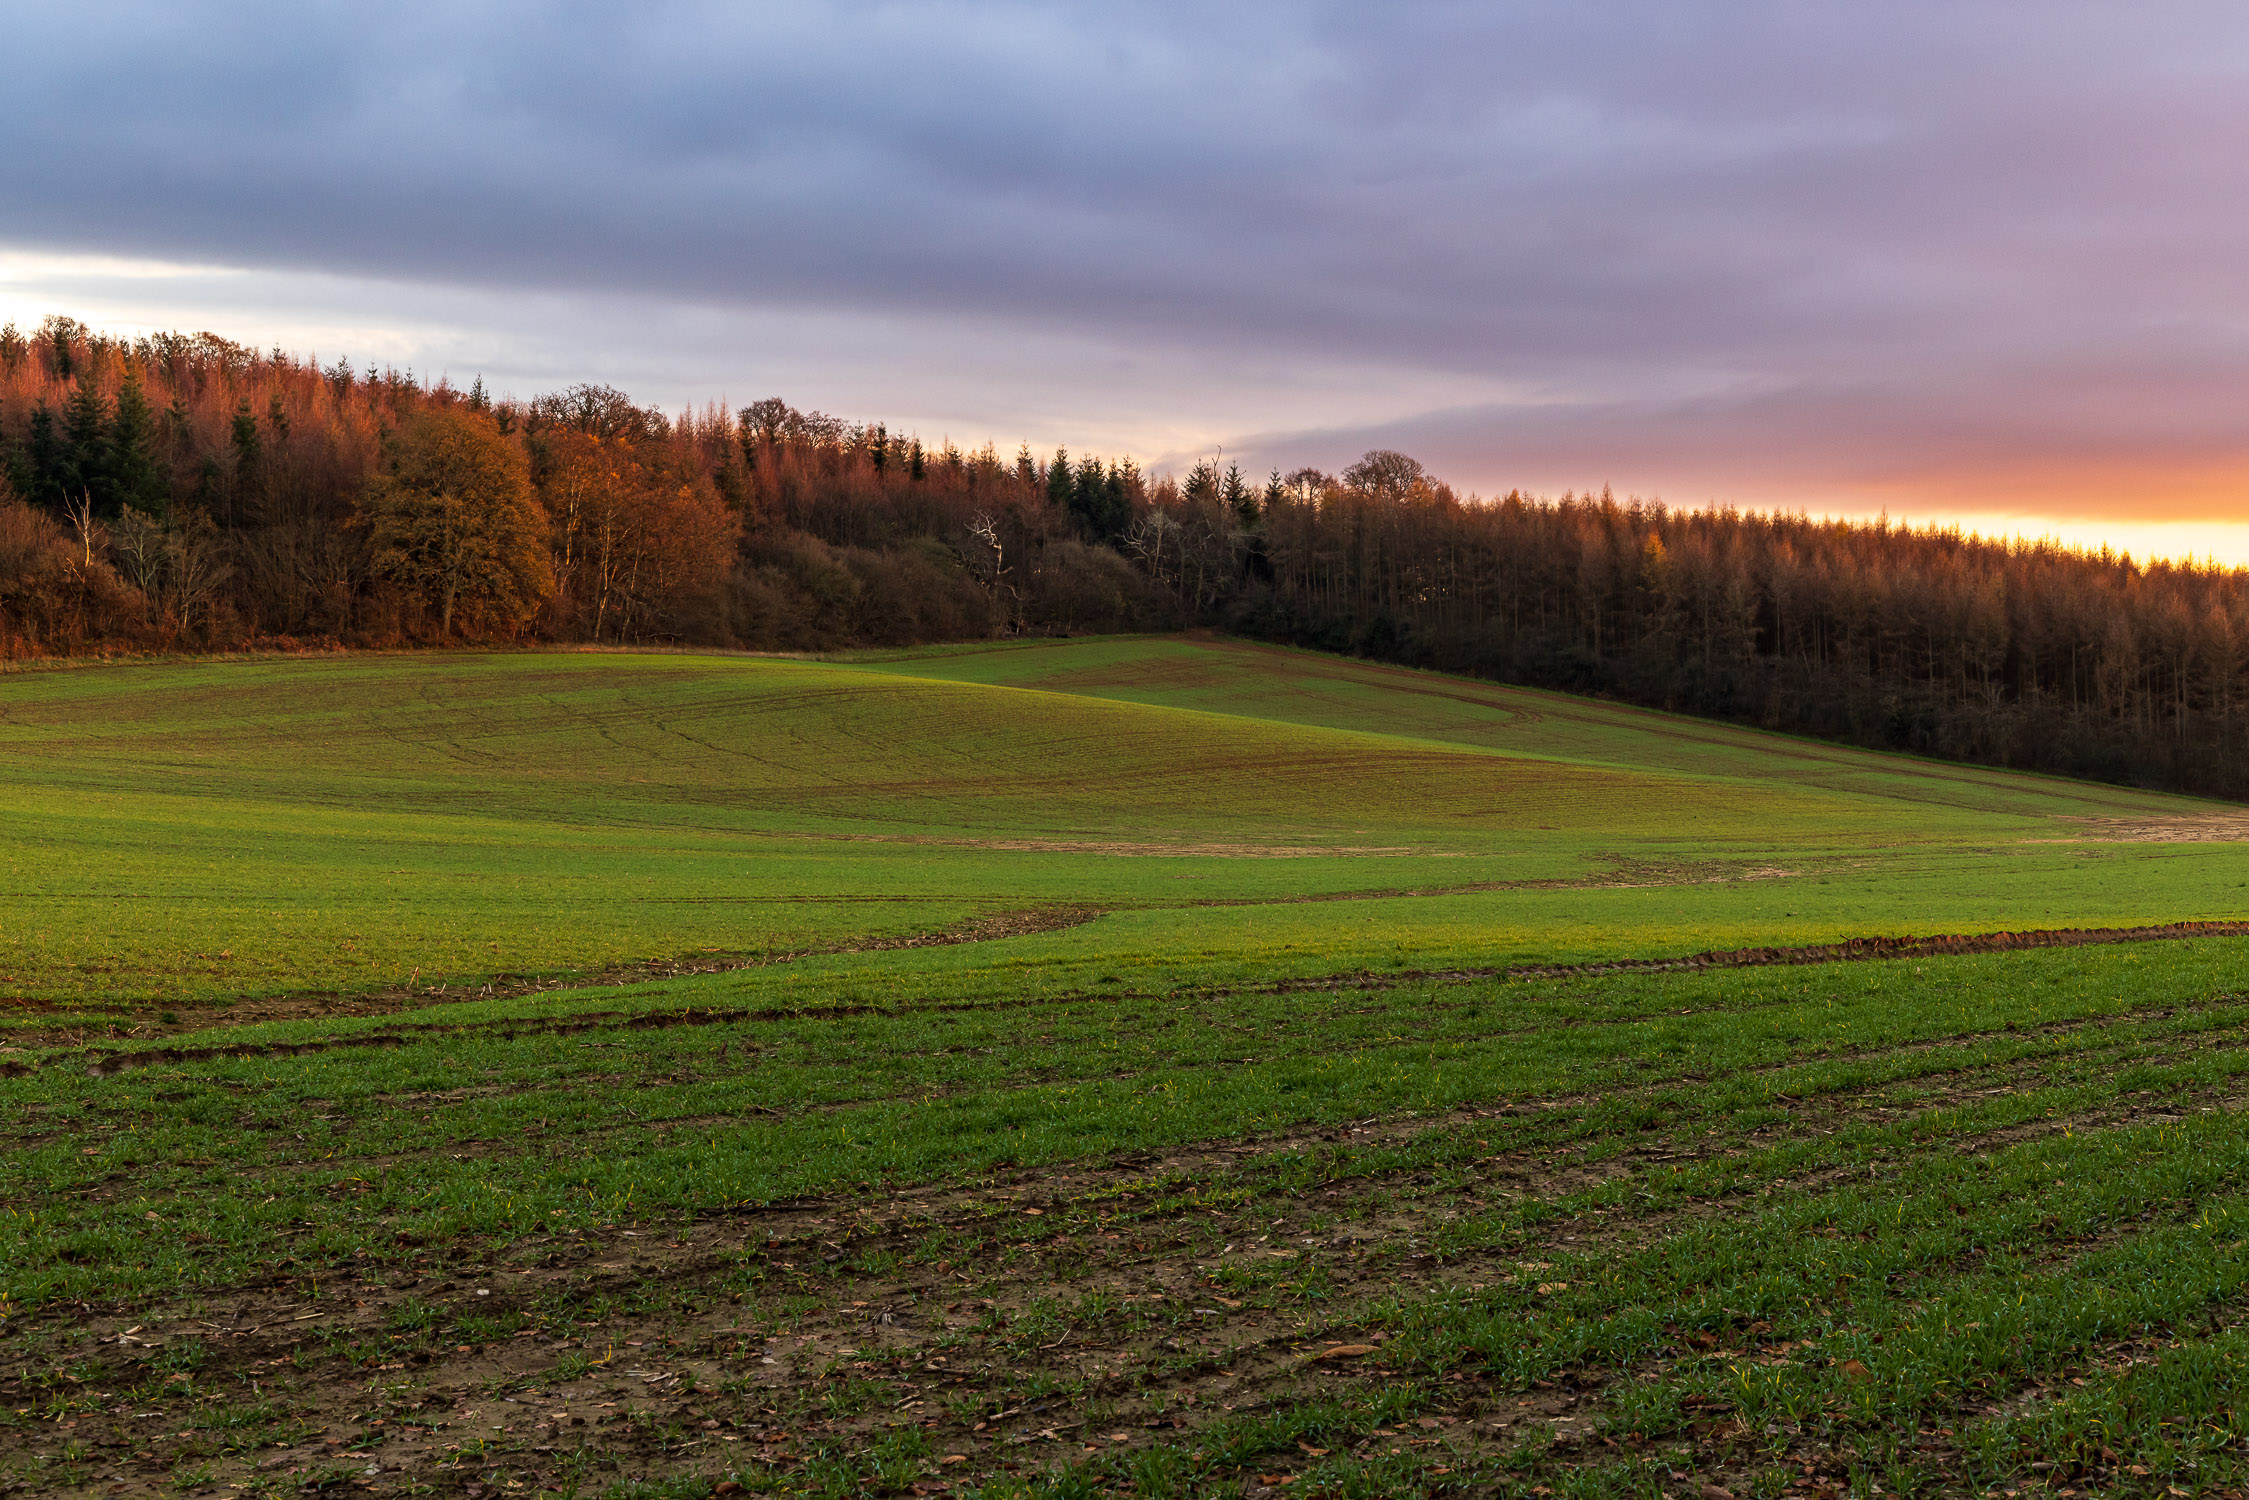 Sunset tones in the Sussex countryside